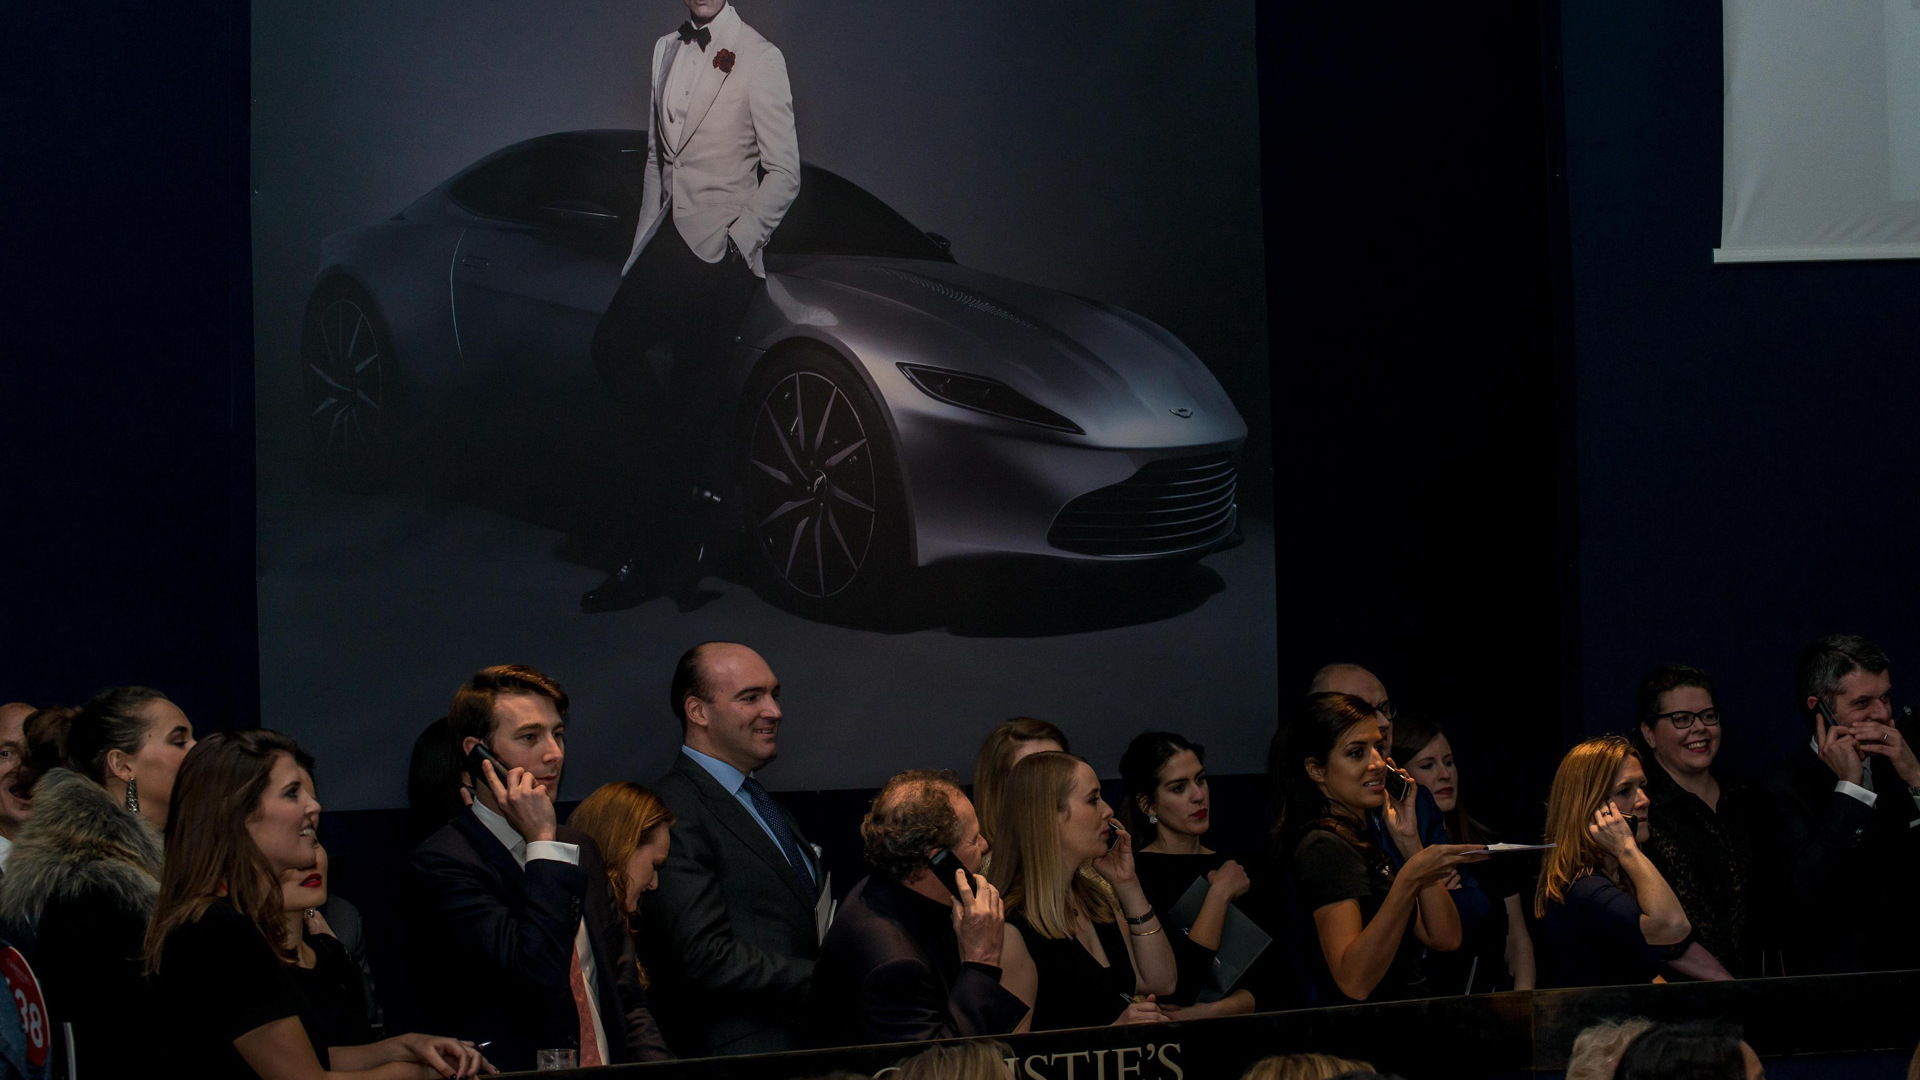 Aston Martin DB10 auction at Christie's in London, February 18, 2016